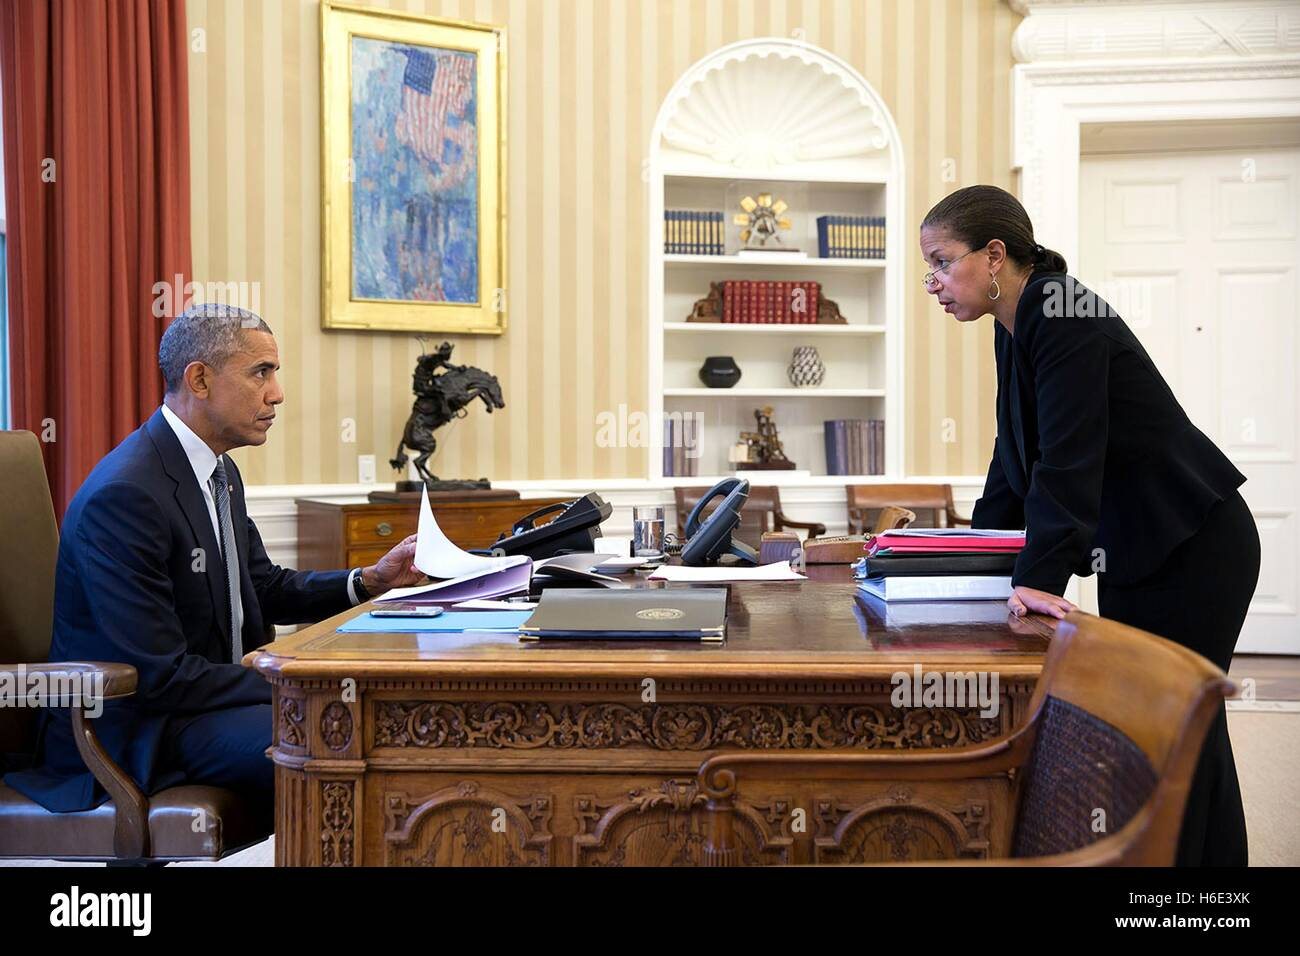 White house oval office desk Background Us President Barack Obama Meets With National Security Advisor Susan Rice In The White House Oval Bgliving Oval Office Desk Stock Photos Oval Office Desk Stock Images Alamy